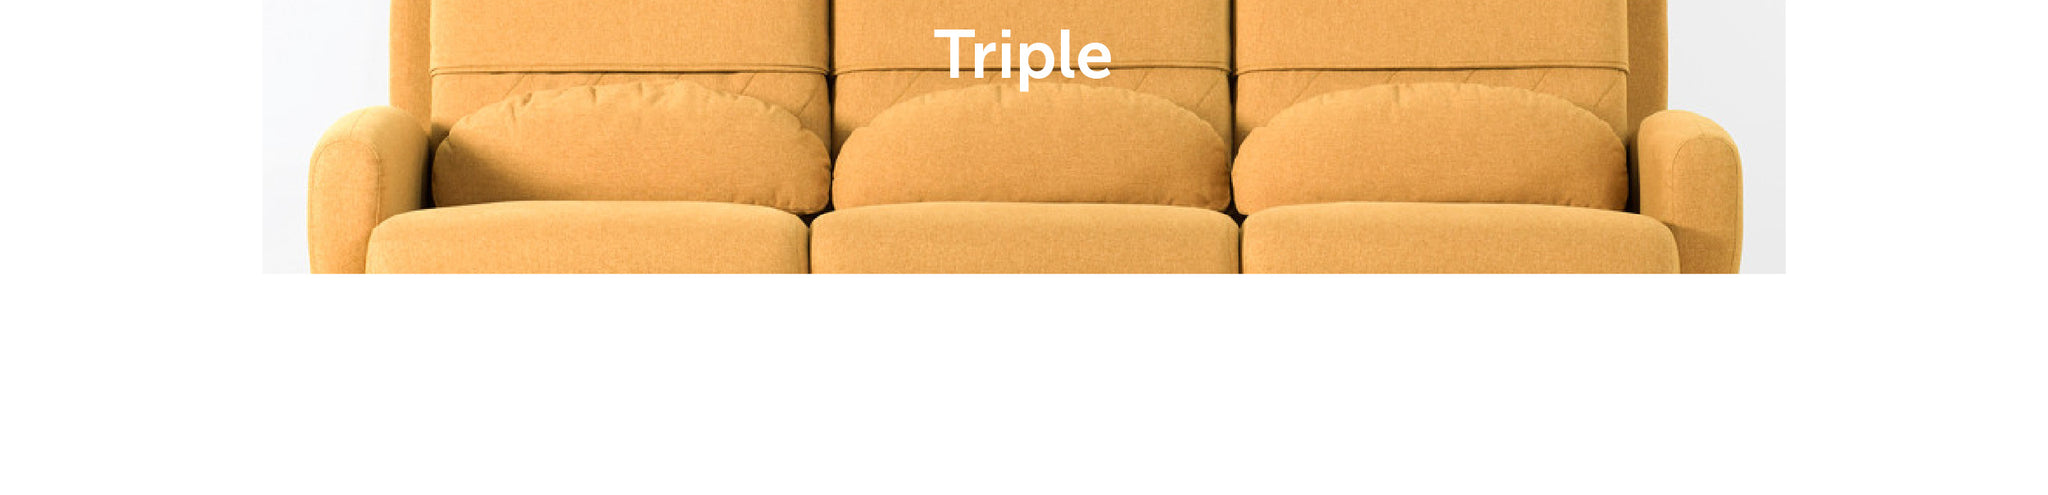 Turtleneck Sofa Triple from Playful Angles Furniture by Ziinlife